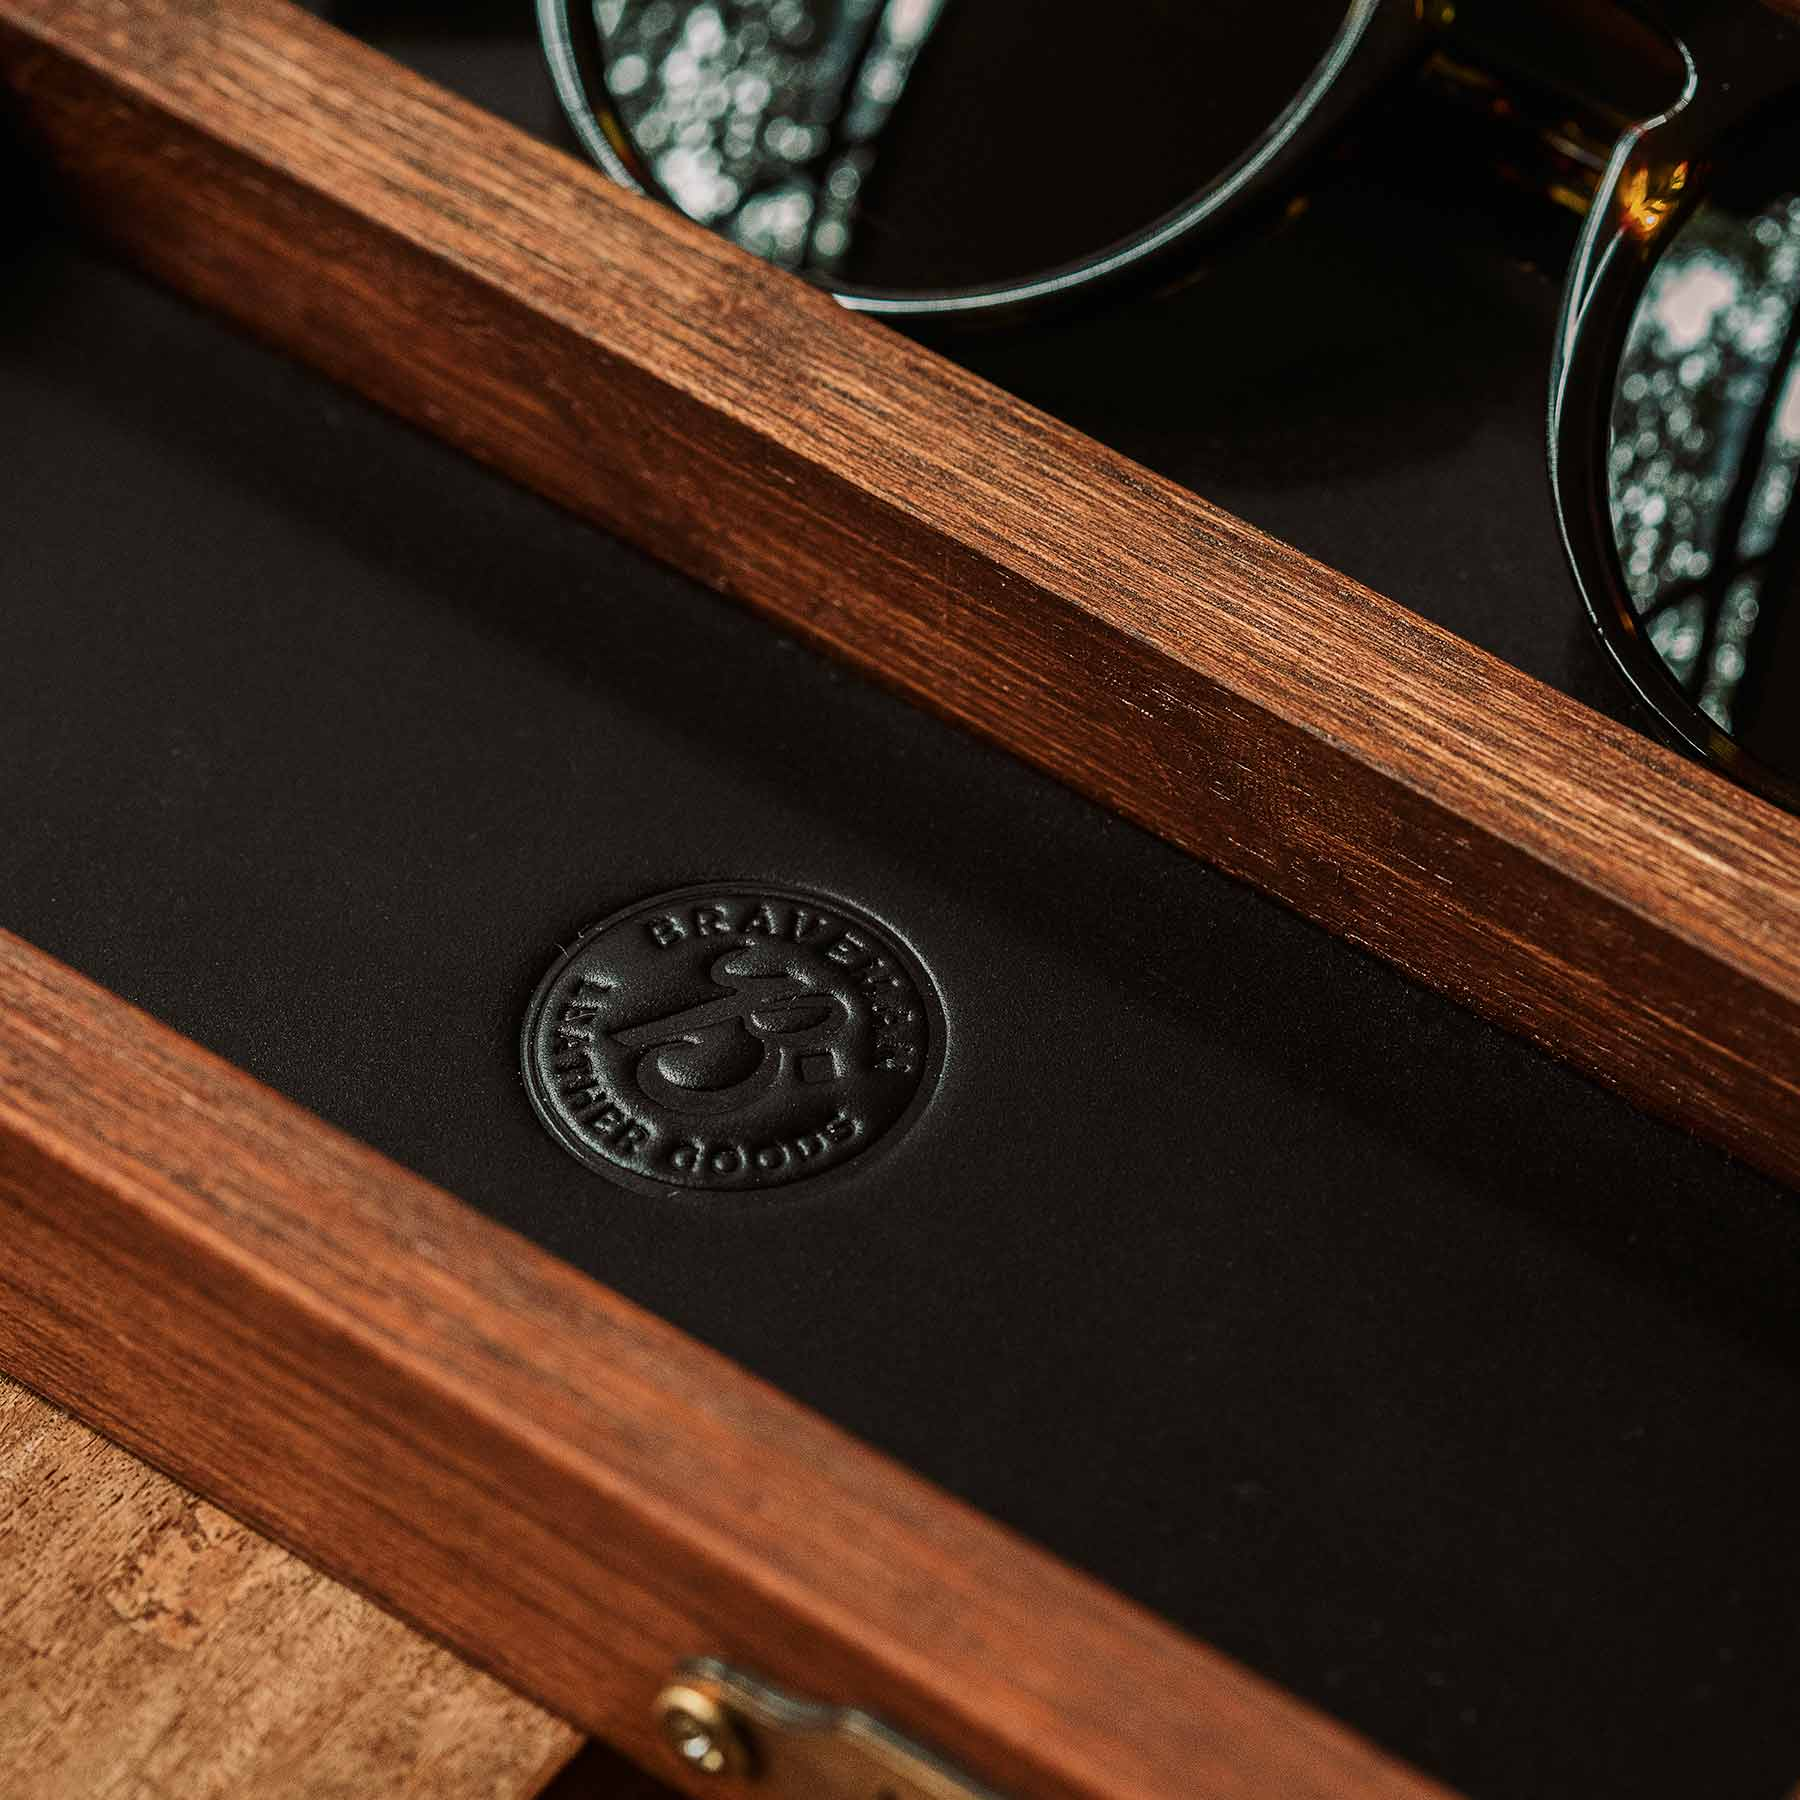 EDC Glasses Tray - Wood - Braveman x Lab Chama